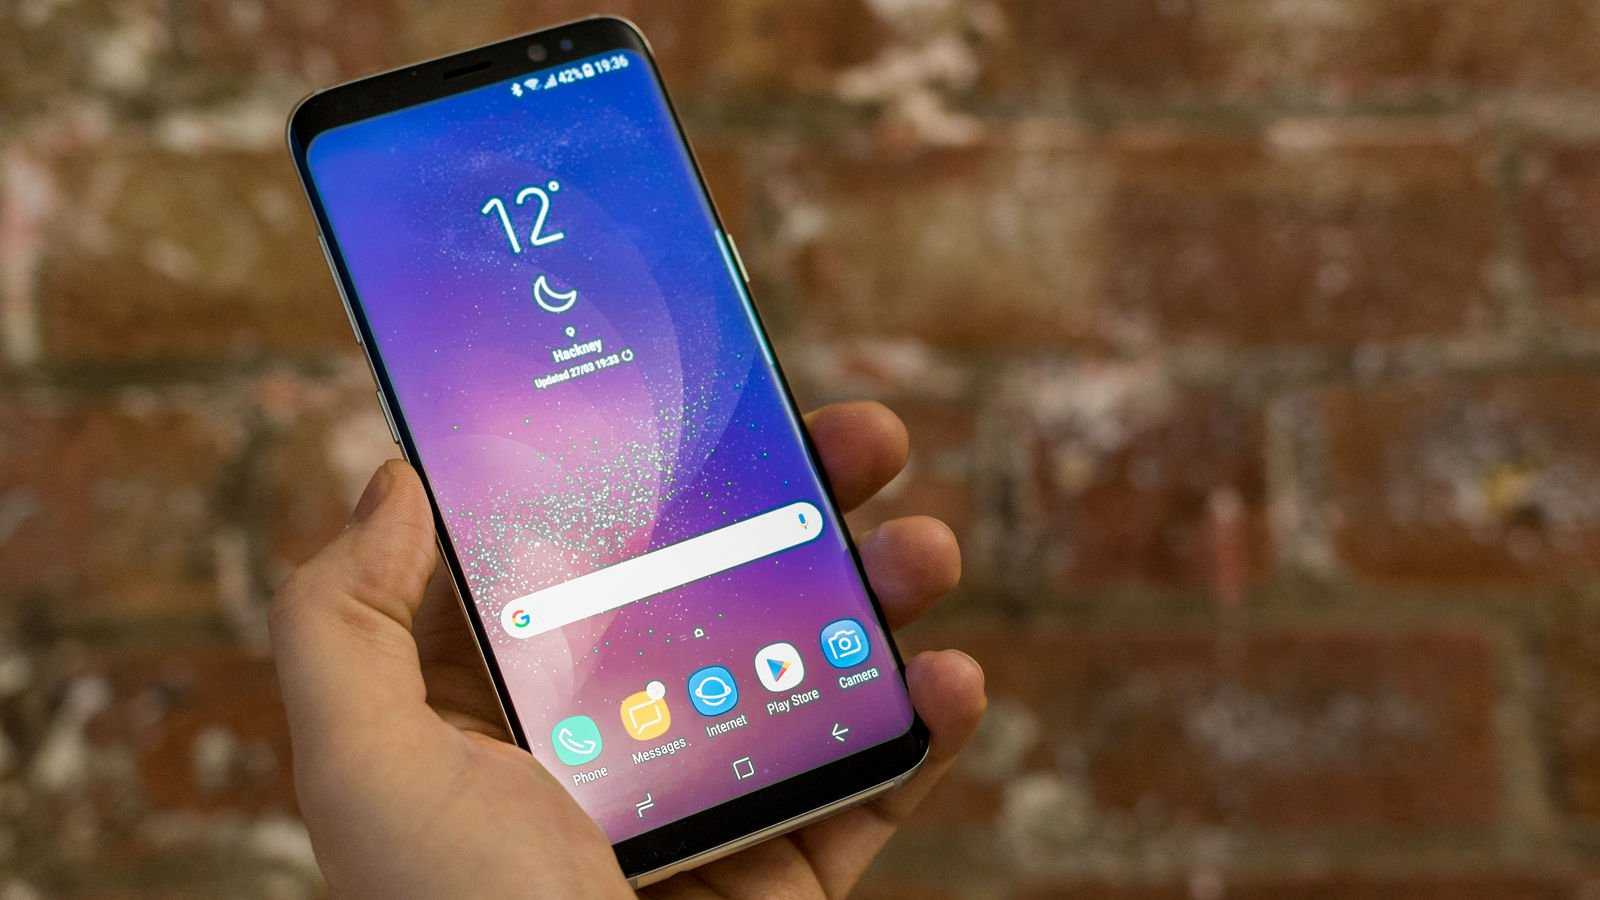 Samsung To Sell Refurbished Galaxy Note 7 In South Korea Fe However Seems Have Recovered Now And Has Recently Launched The S8 Successfully